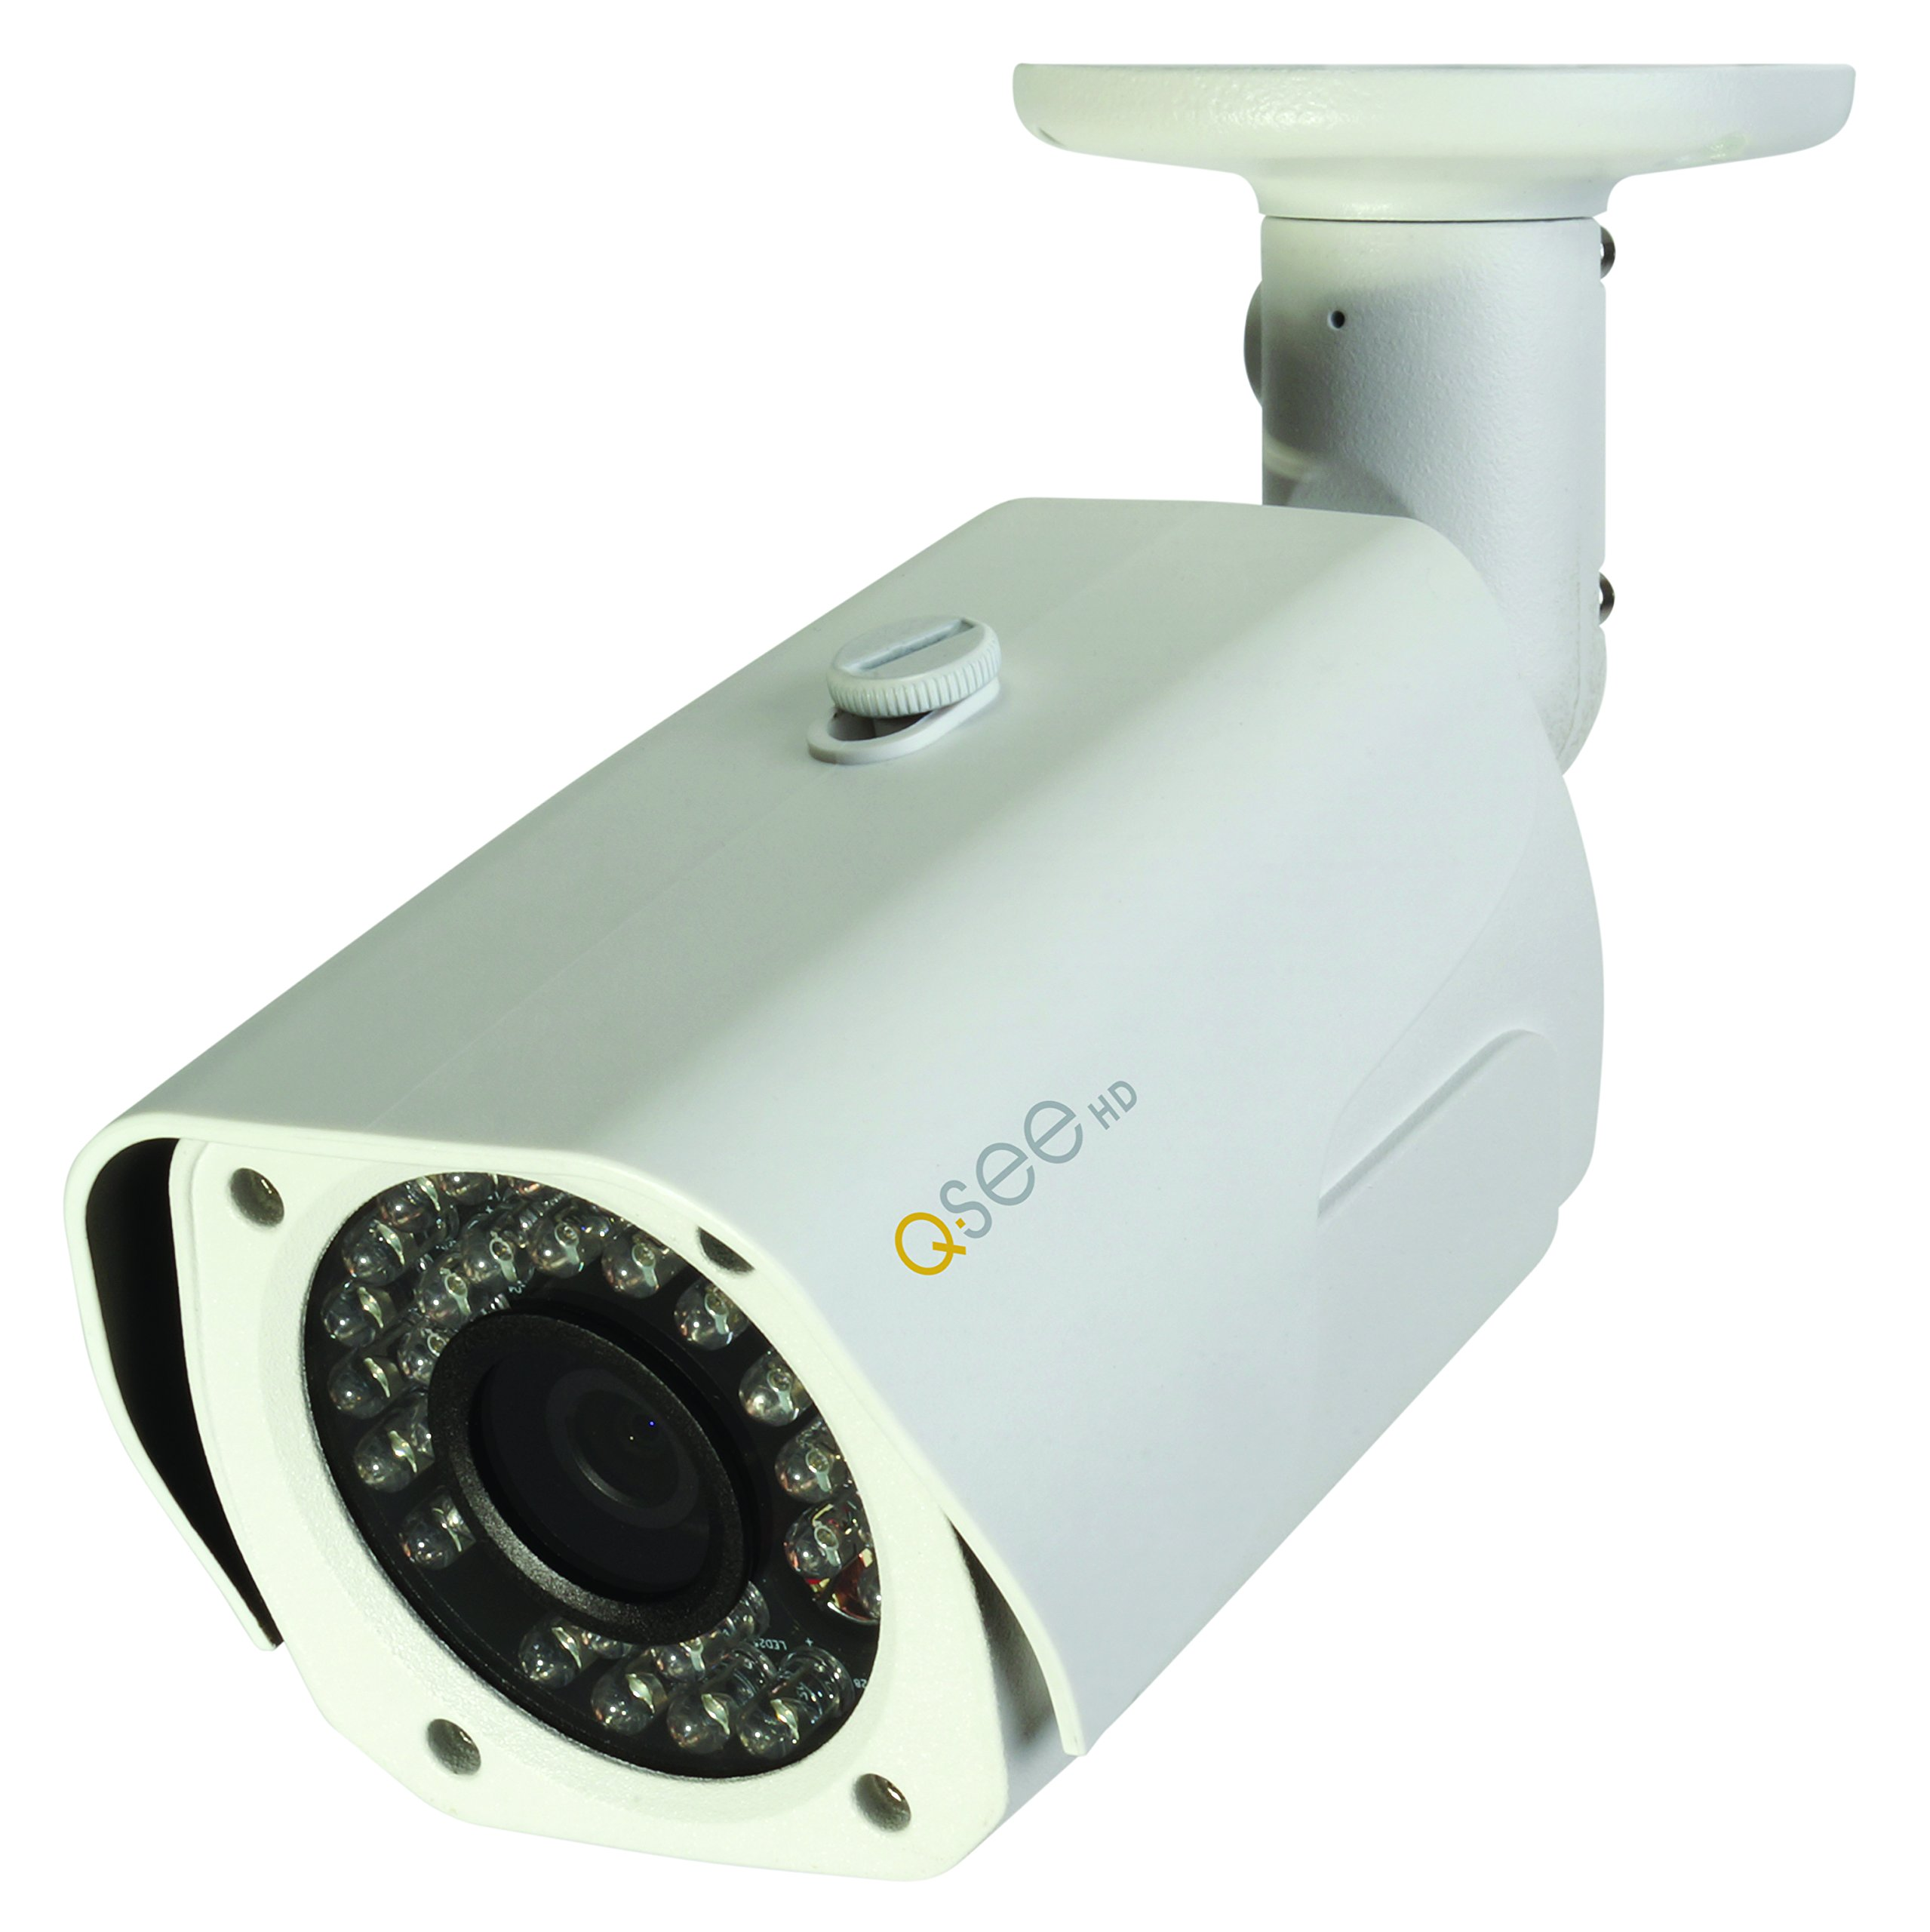 Q-See QCA7201B 720p High Definition Analog, Metal Housing, Bullet Security Camera (White)